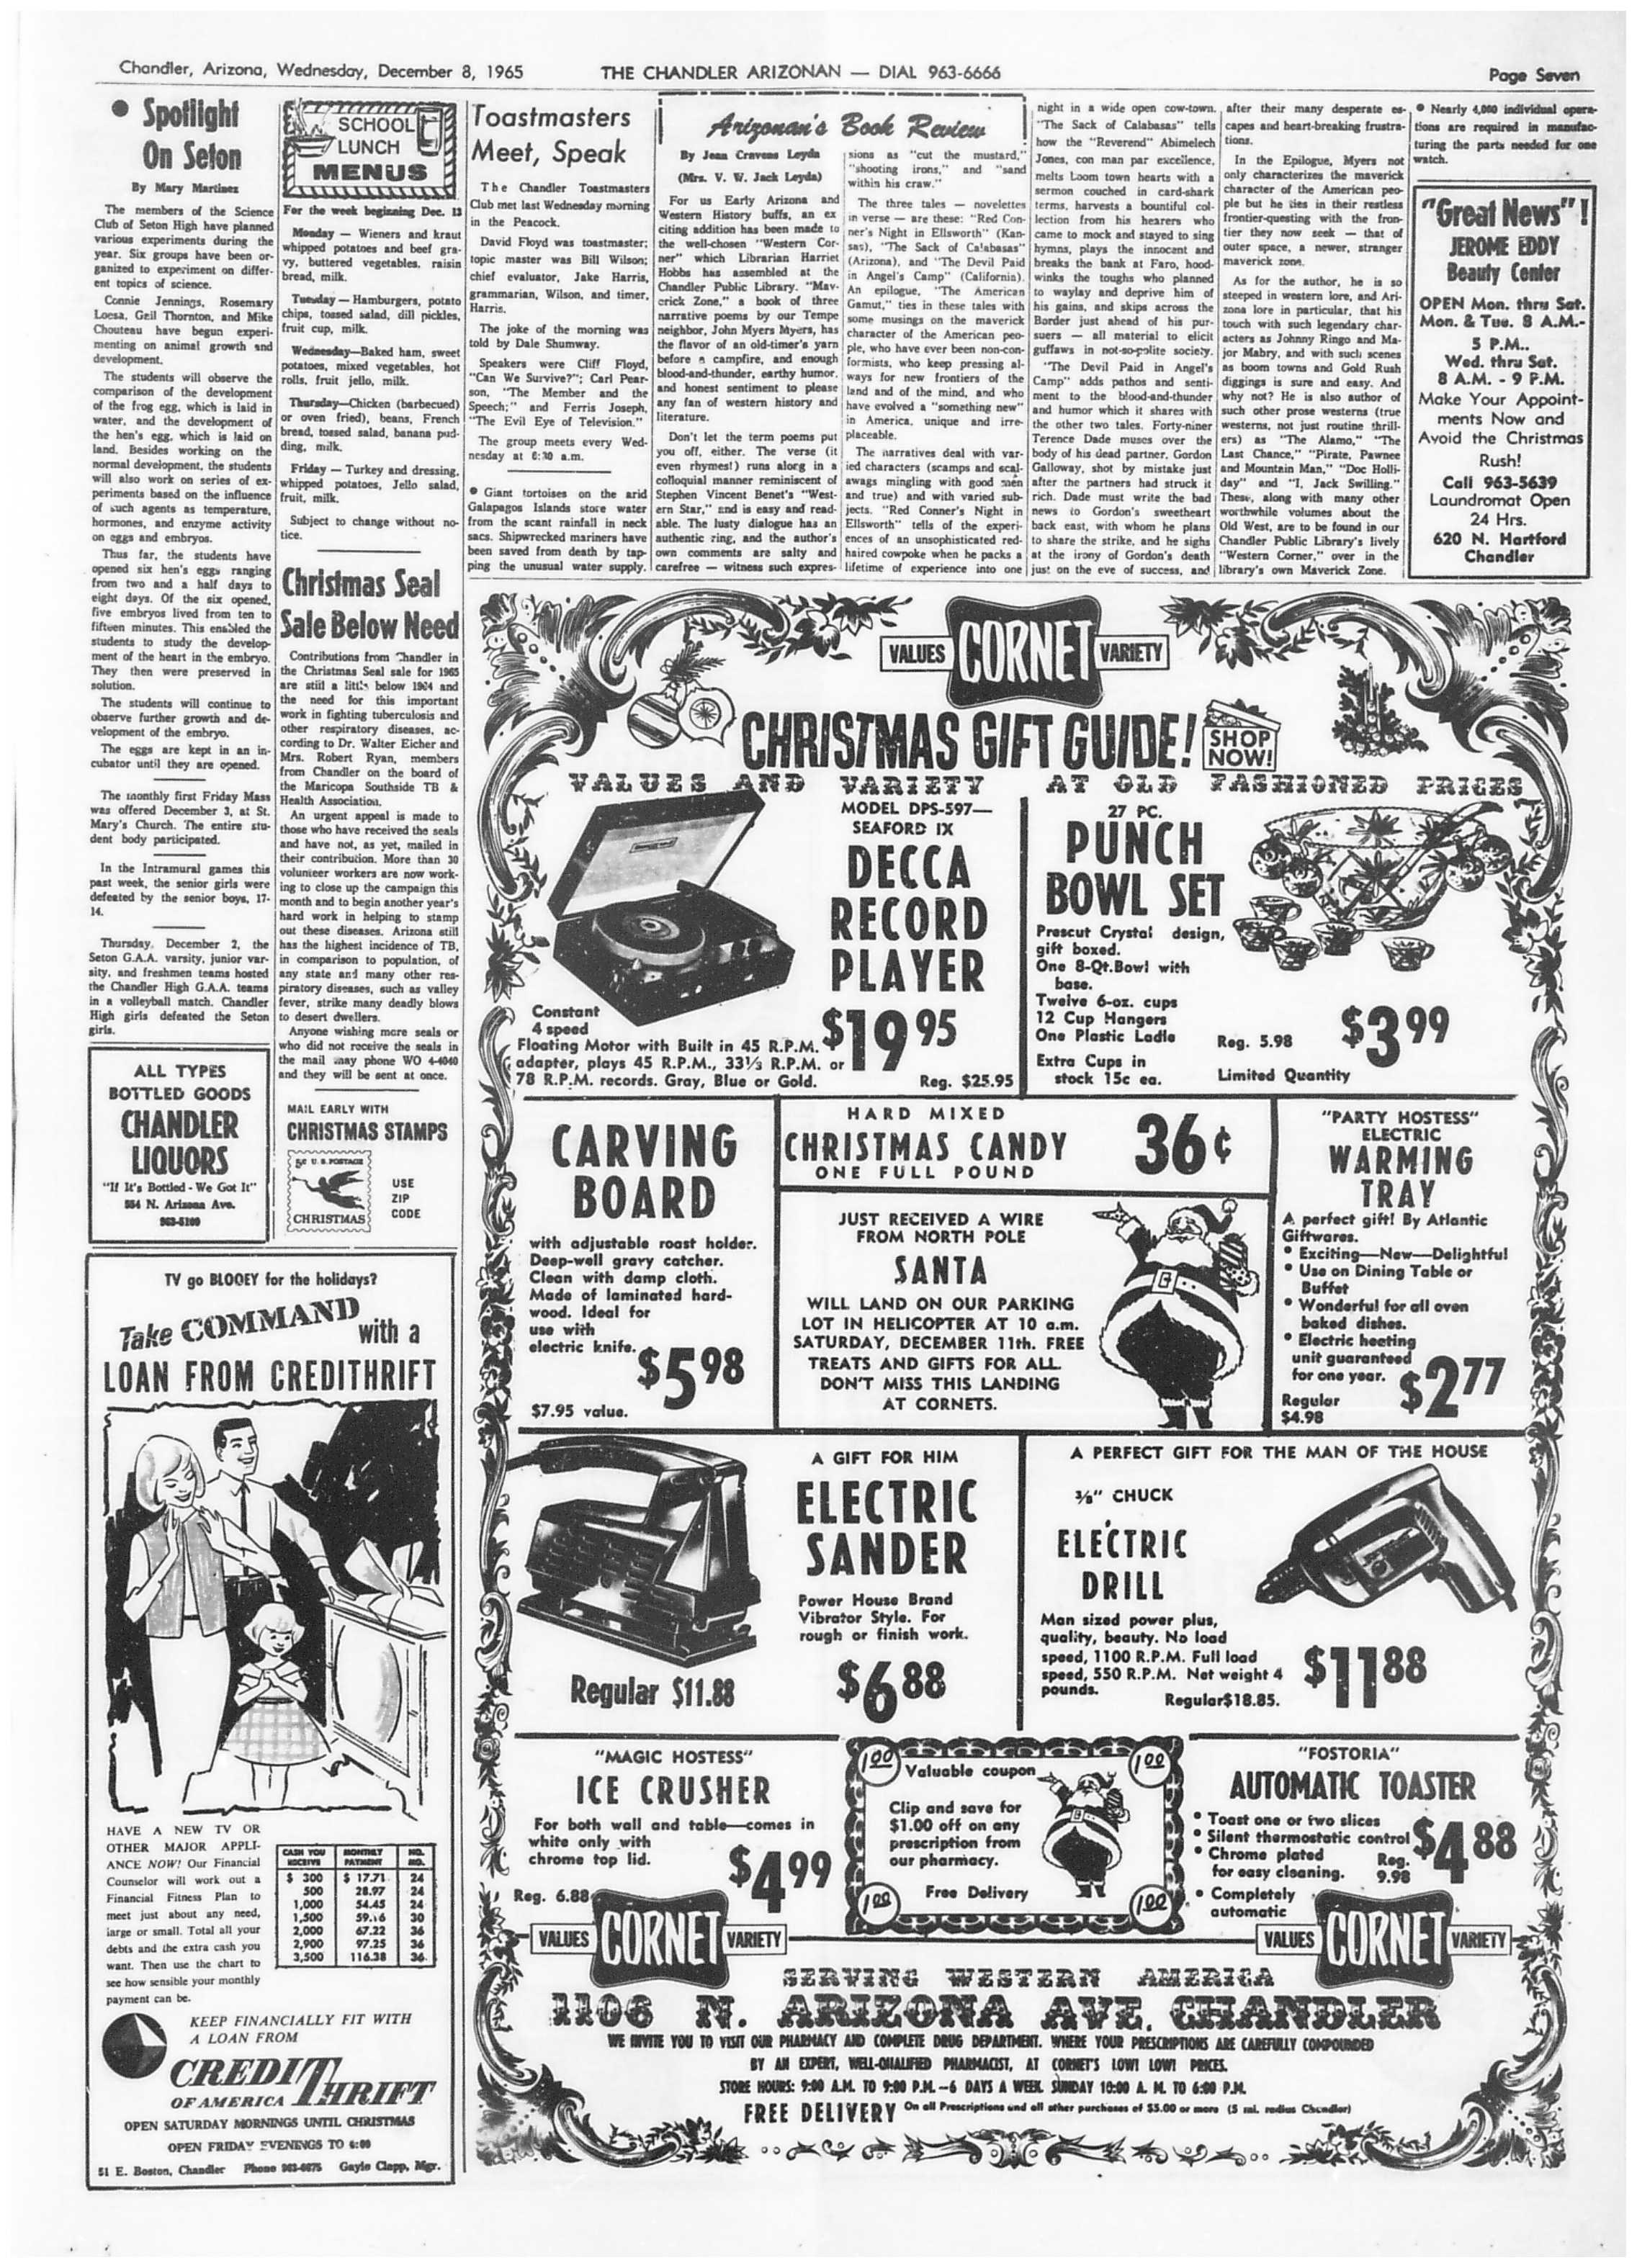 12-8-1965 - Page 7 .jpg